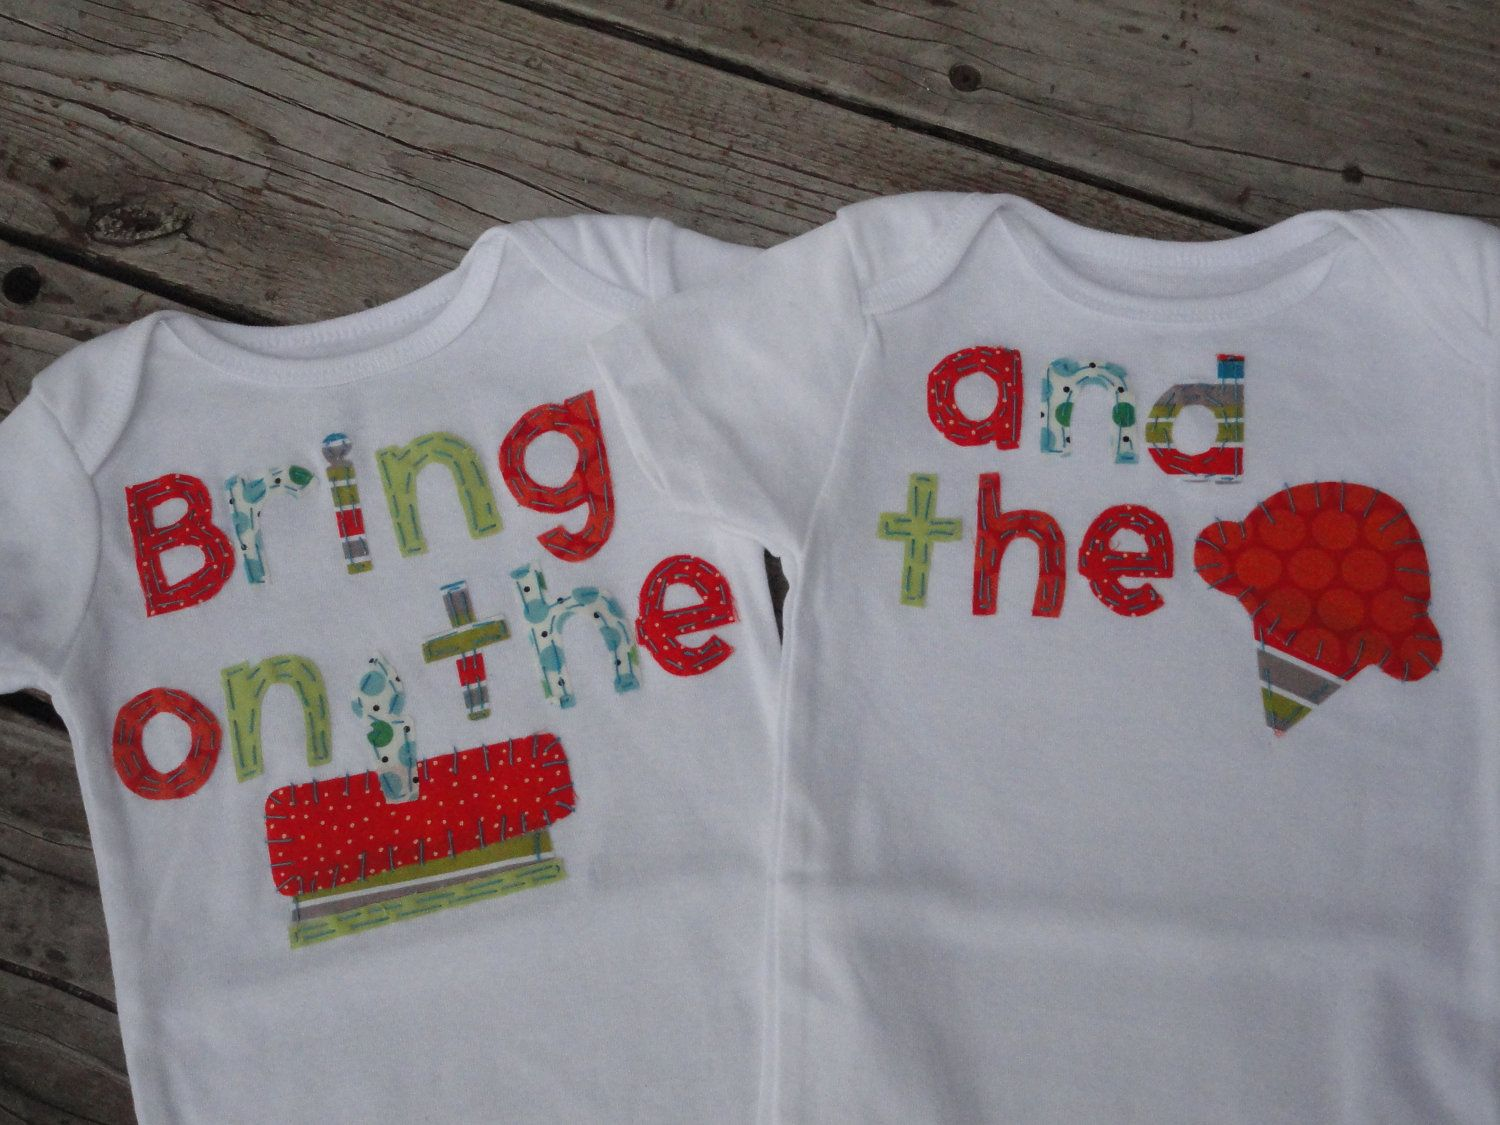 Twin Boys Birthday Onesies Bring On The Cake And Icecream First Brothers Baby Shower Gift 3995 Via Etsy